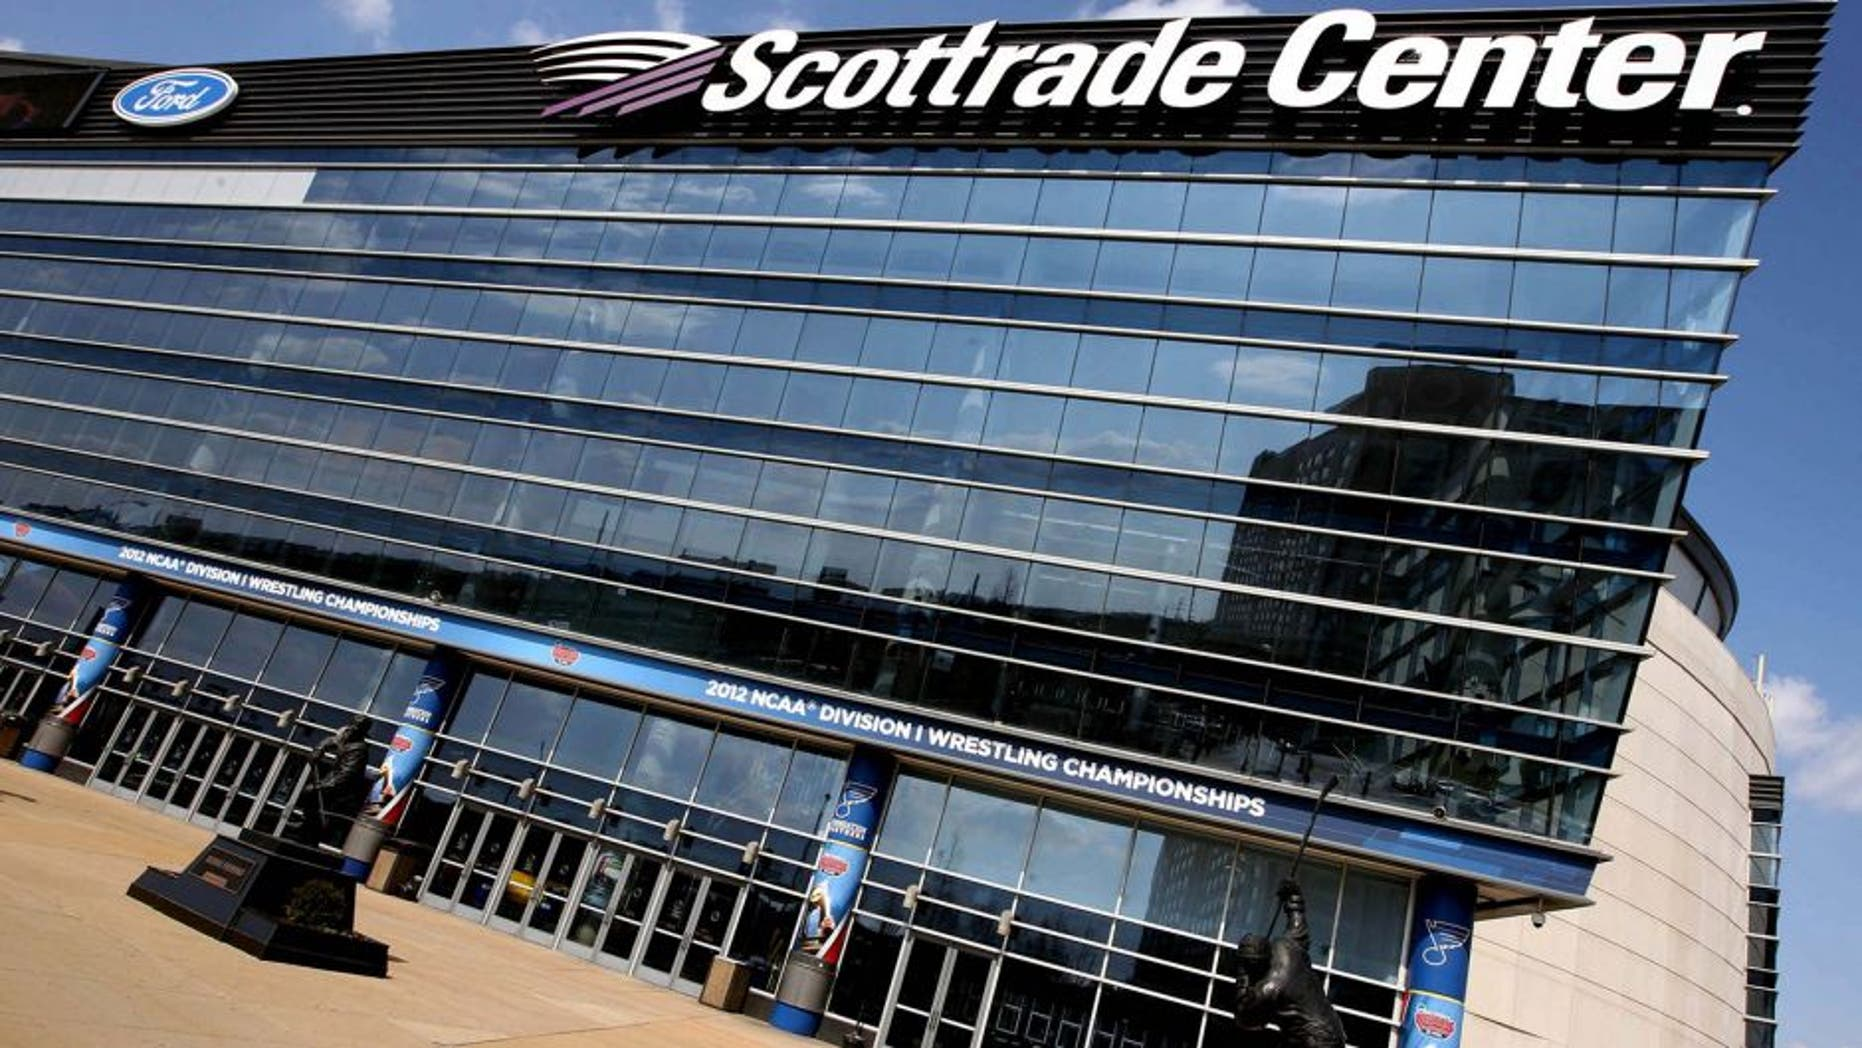 March 14, 2012; St. Louis, MO, USA; A general exterior view of the Scottrade Center a day prior to the 2012 division I wrestling championships. Mandatory Credit: Andrew Carpenean-USA TODAY Sports